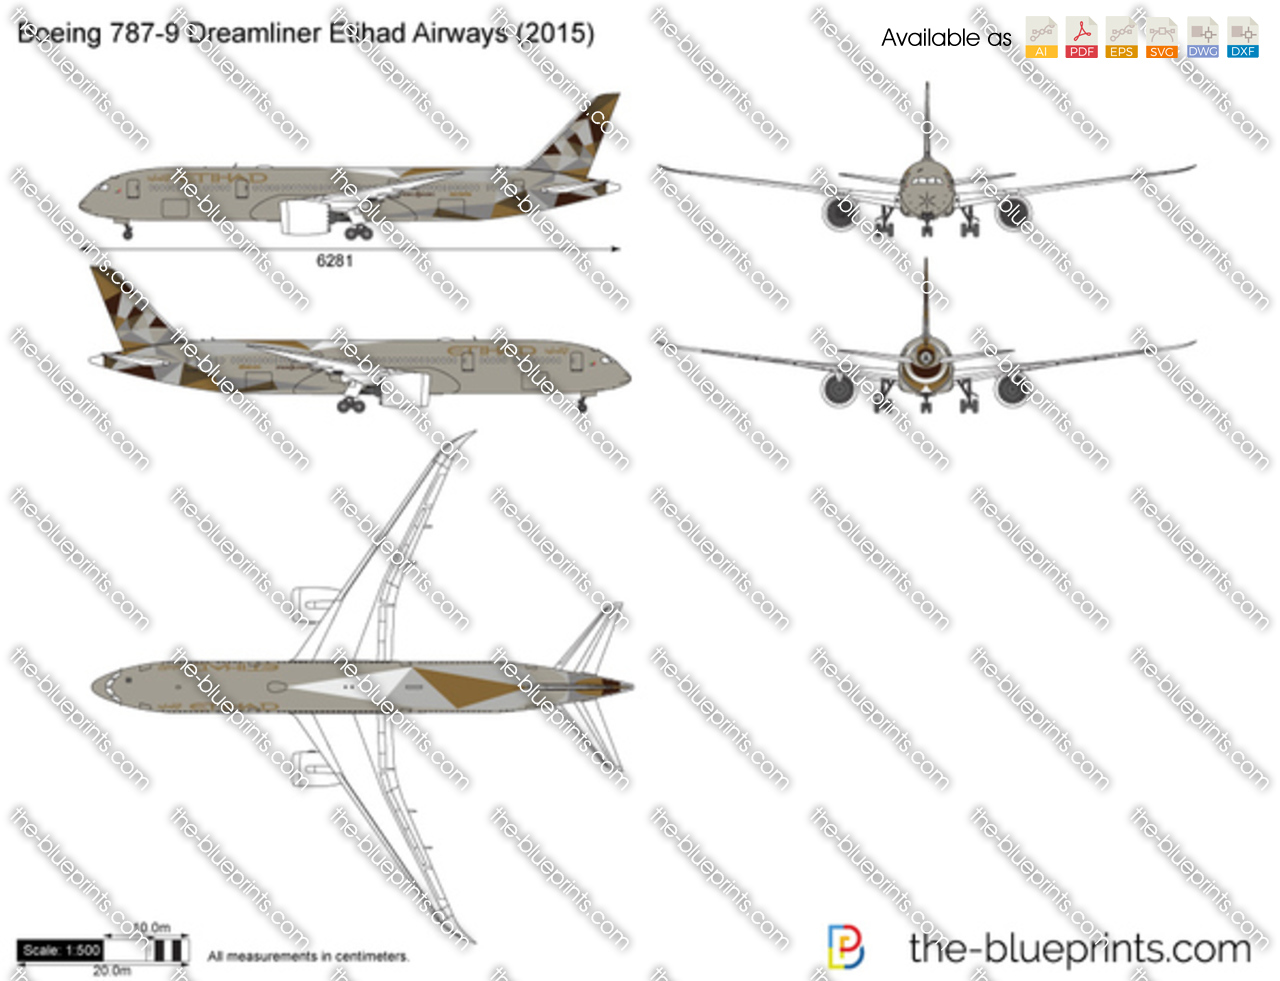 Boeing 787-9 Dreamliner Etihad Airways 2017